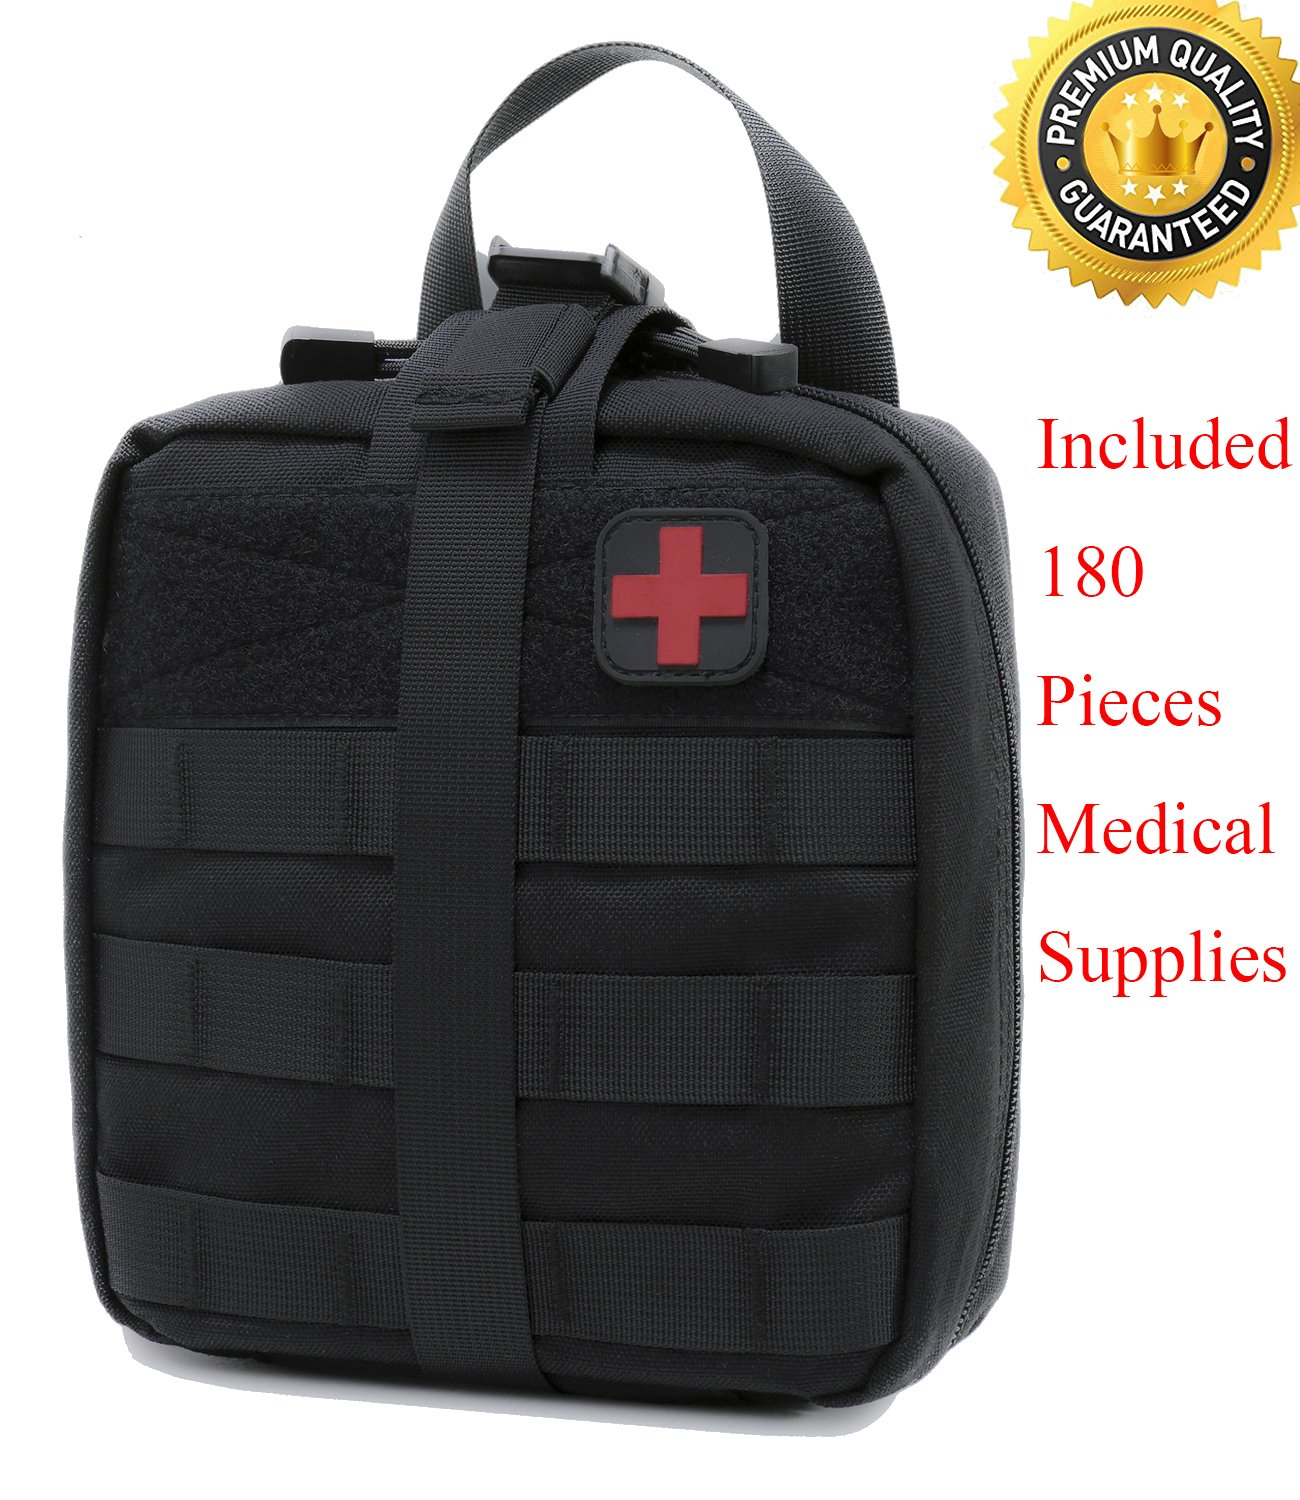 Carlebben Rip-Away EMT Pouch Molle Pouch Ifak Pouch Medical First Aid Kit Utility Pouch 1000D Nylon (with Medical Supplies)